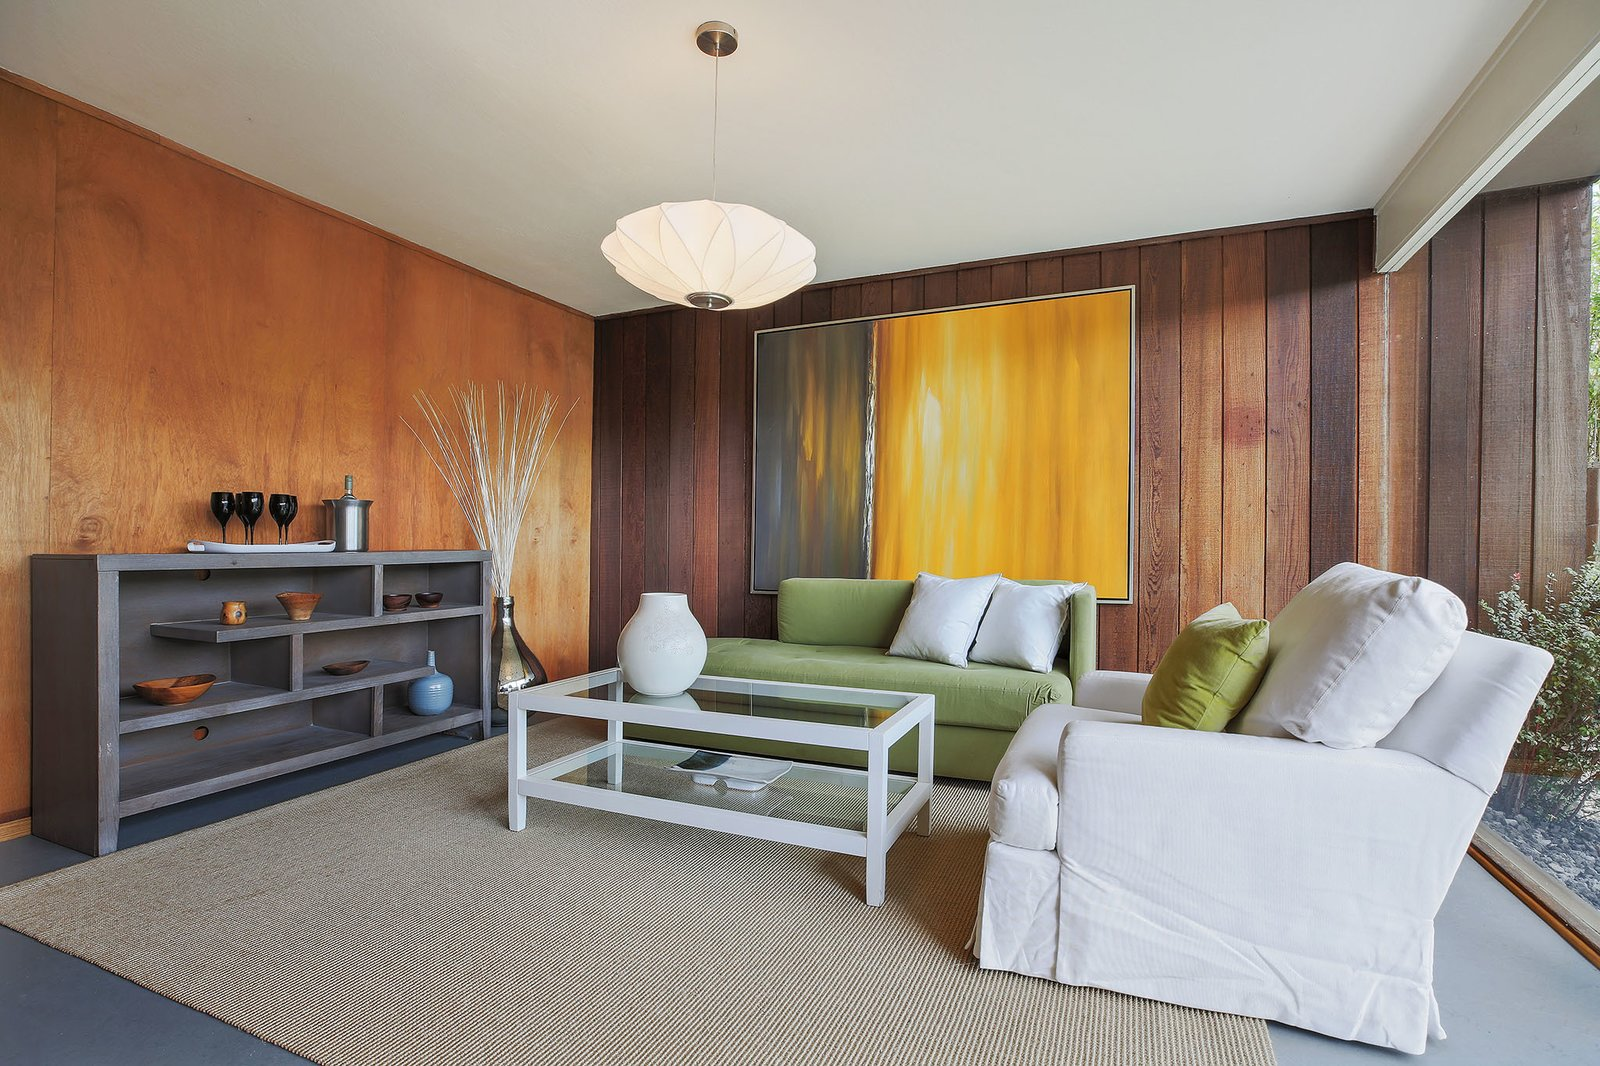 Living Room, Sofa, Bookcase, Chair, Pendant Lighting, Rug Floor, and Coffee Tables Original details including mahogany and redwood walls.  Photo 10 of 15 in This Rare Two-Story Eichler Has Just Been Listed For $1.35M